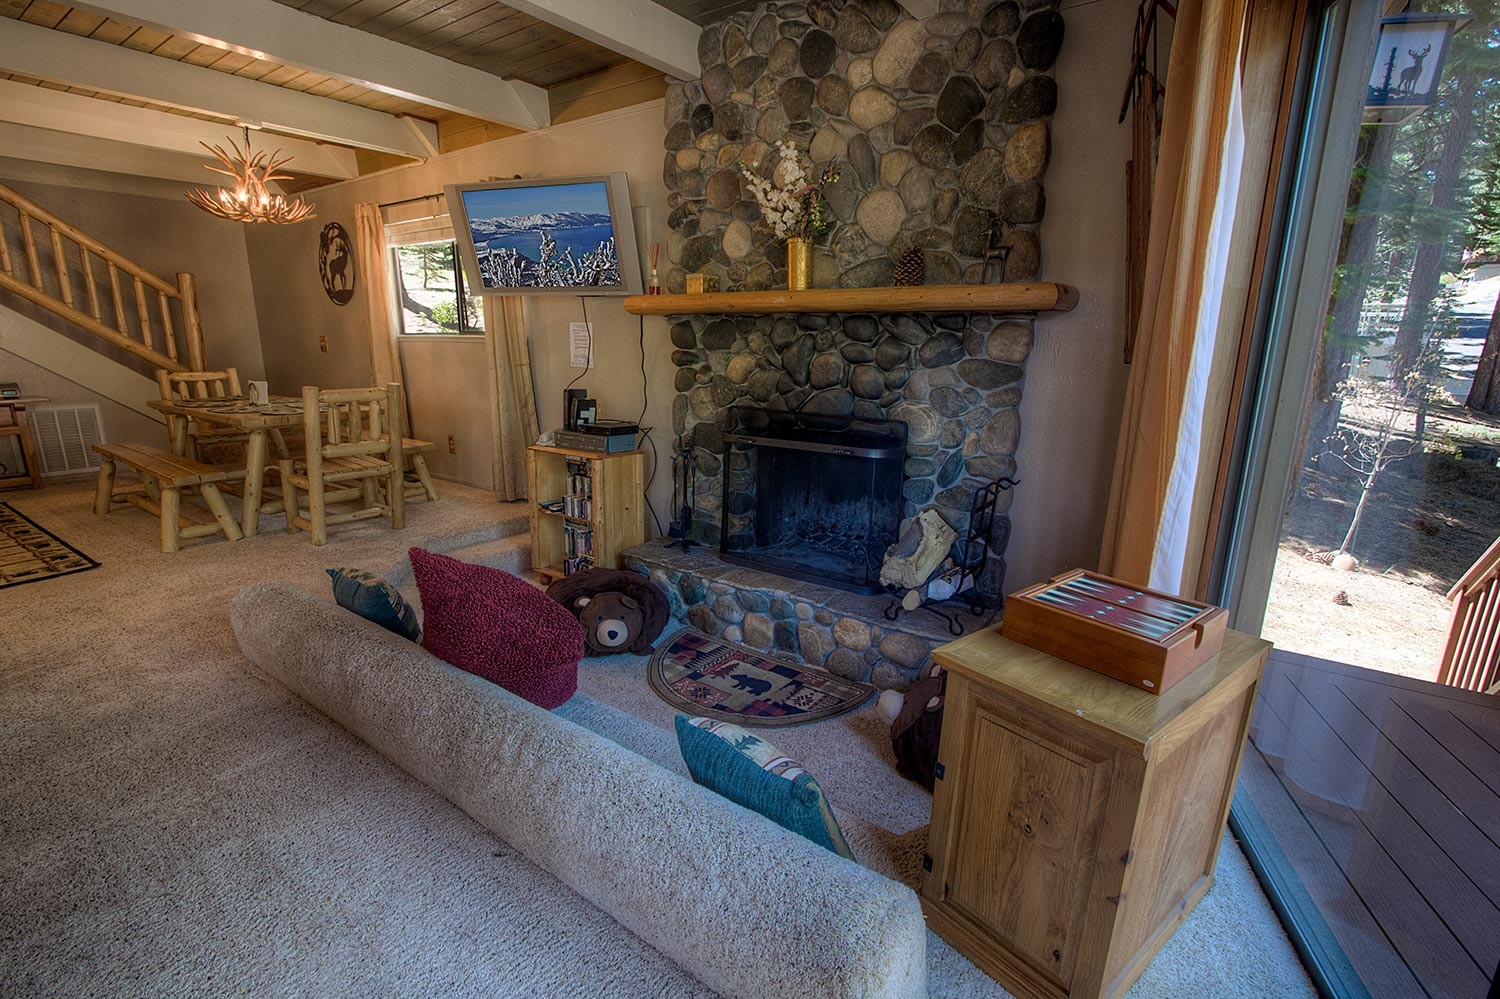 rent ca harrison lake slt management property rental tour cabins tahoe suite long looking term in ave a for